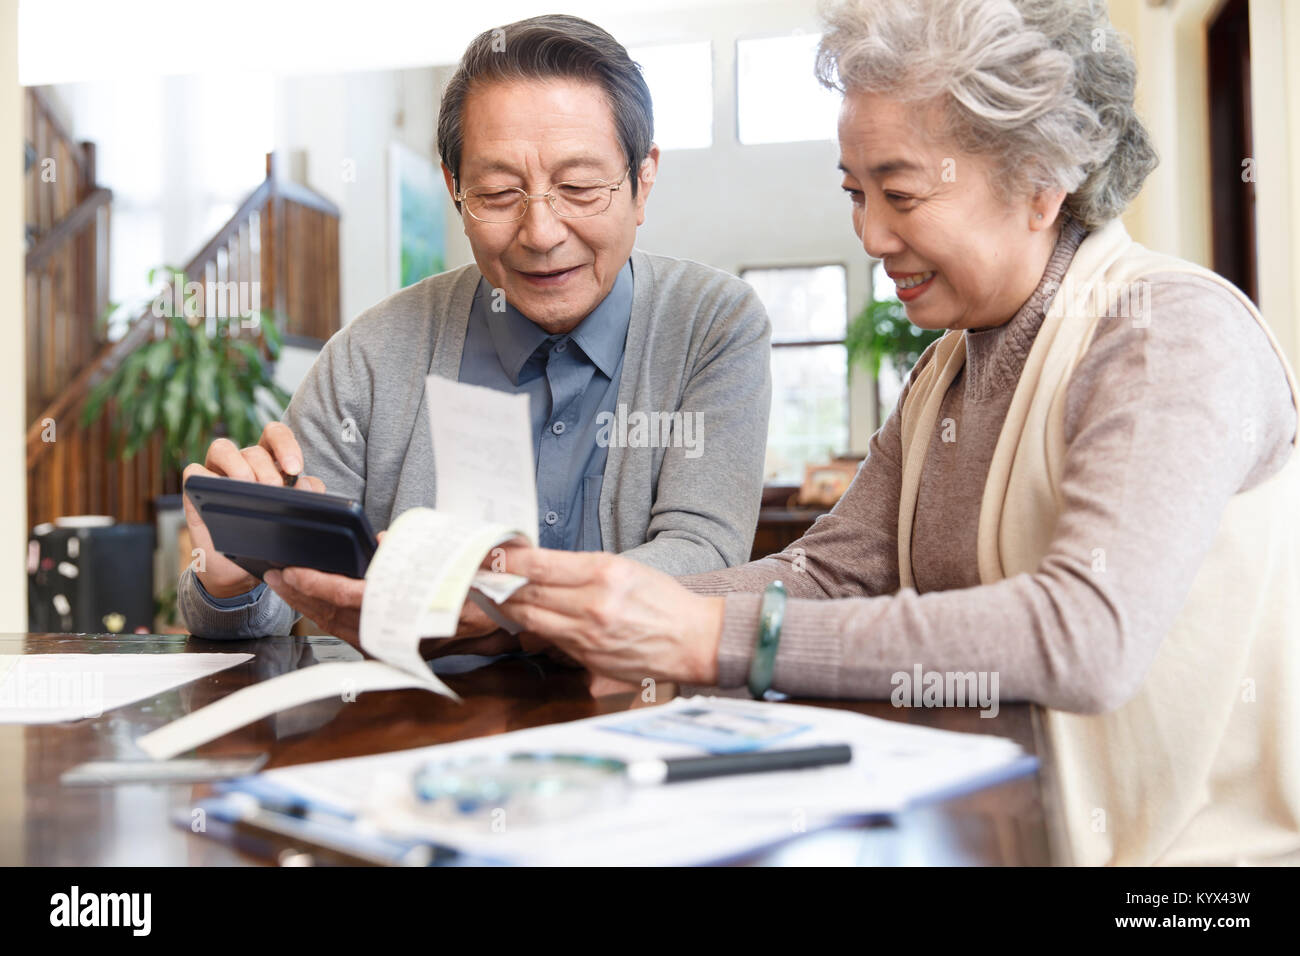 Elderly couples are managing finances - Stock Image